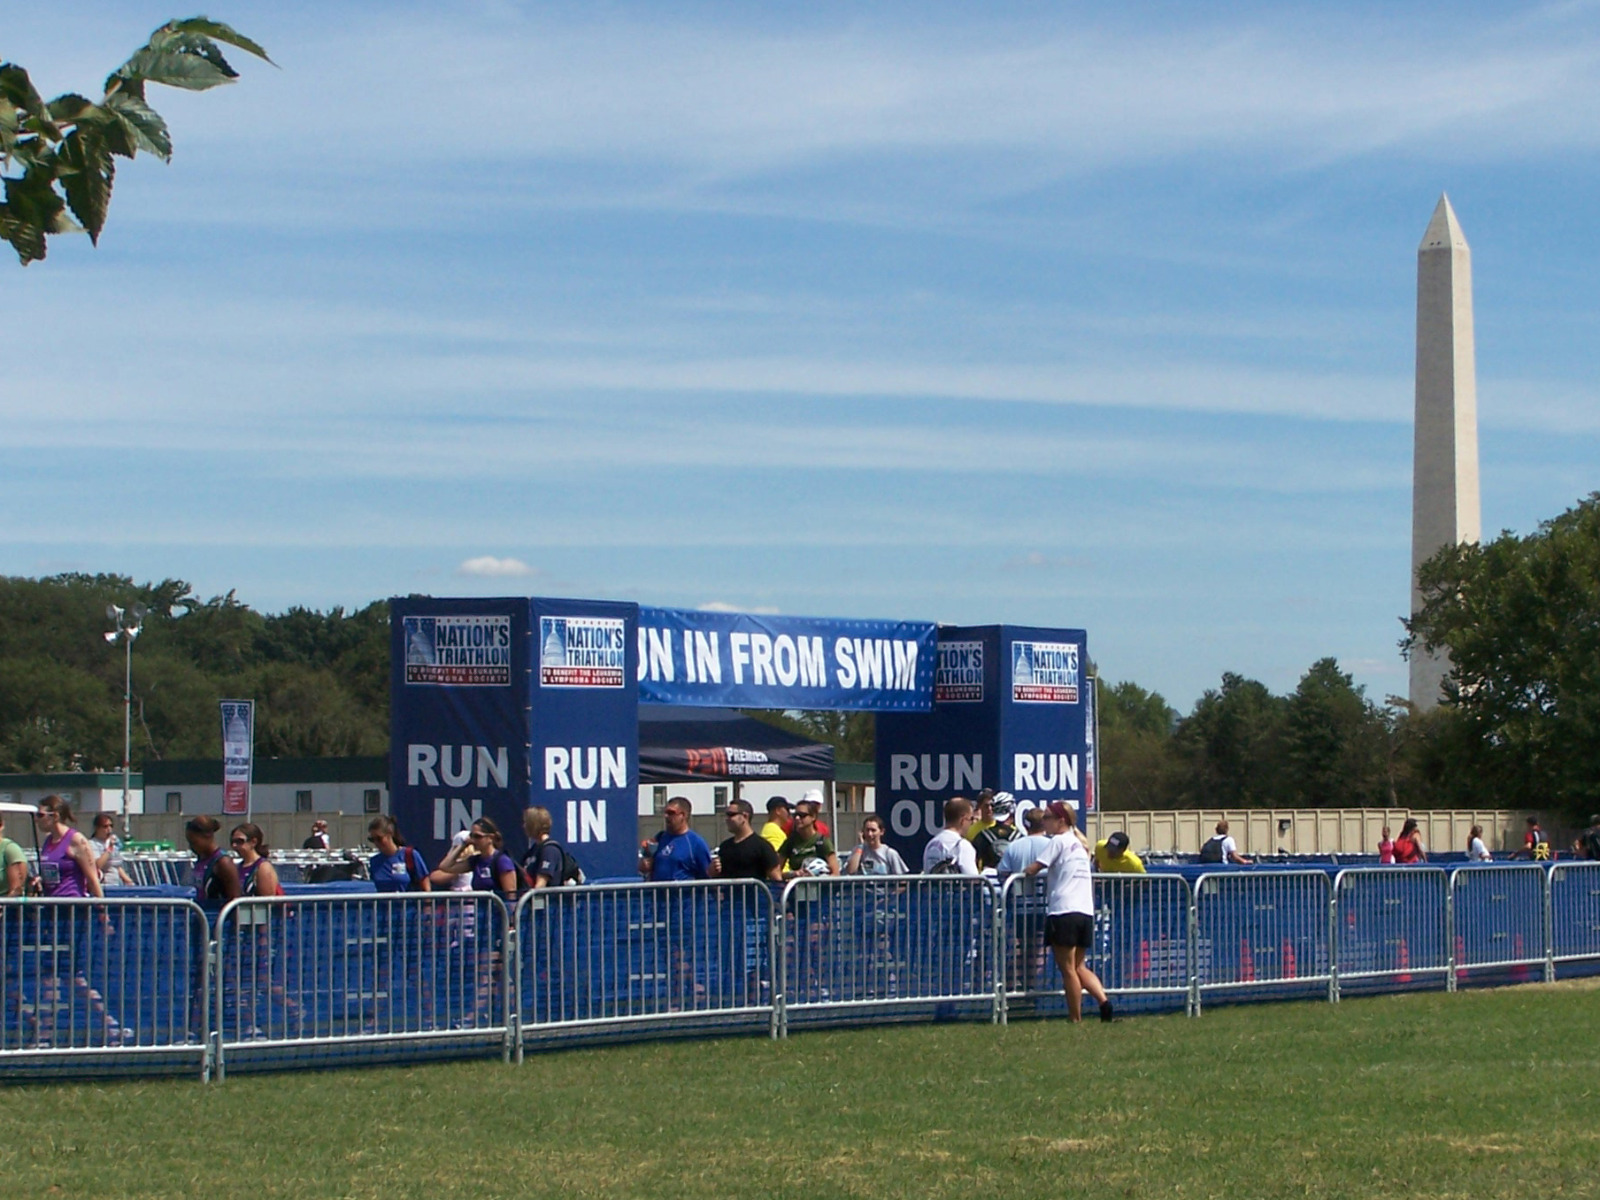 Nation's Triathlon Custom Banners and Barricades by SONCO